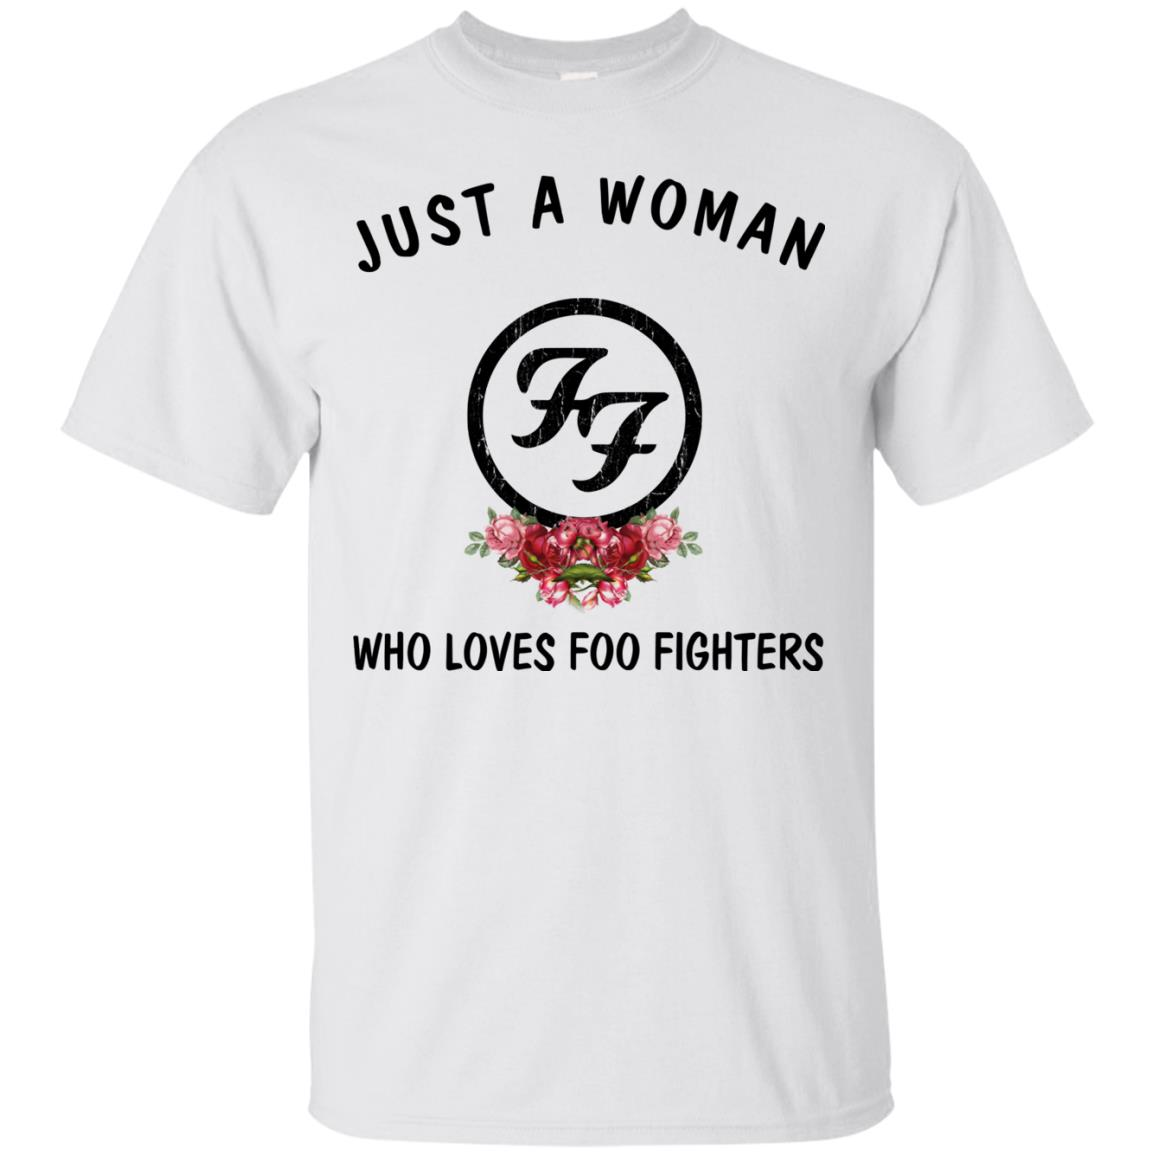 86a3ab3d Just a Woman who loves Foo Fighters shirt - image 2010 500x500